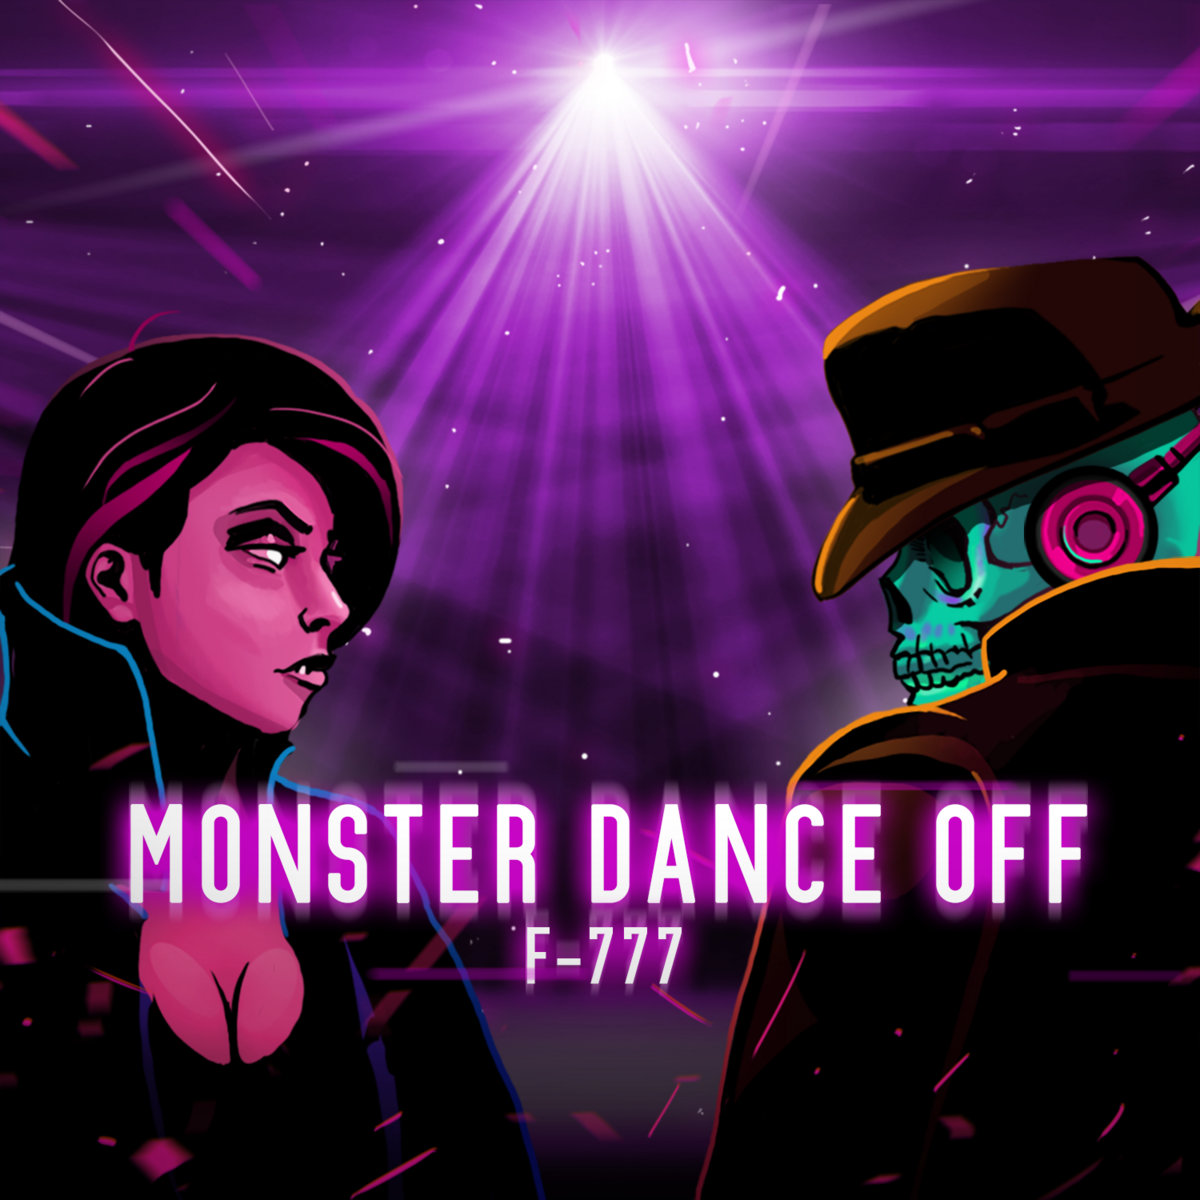 monster dance off vip mix f 777